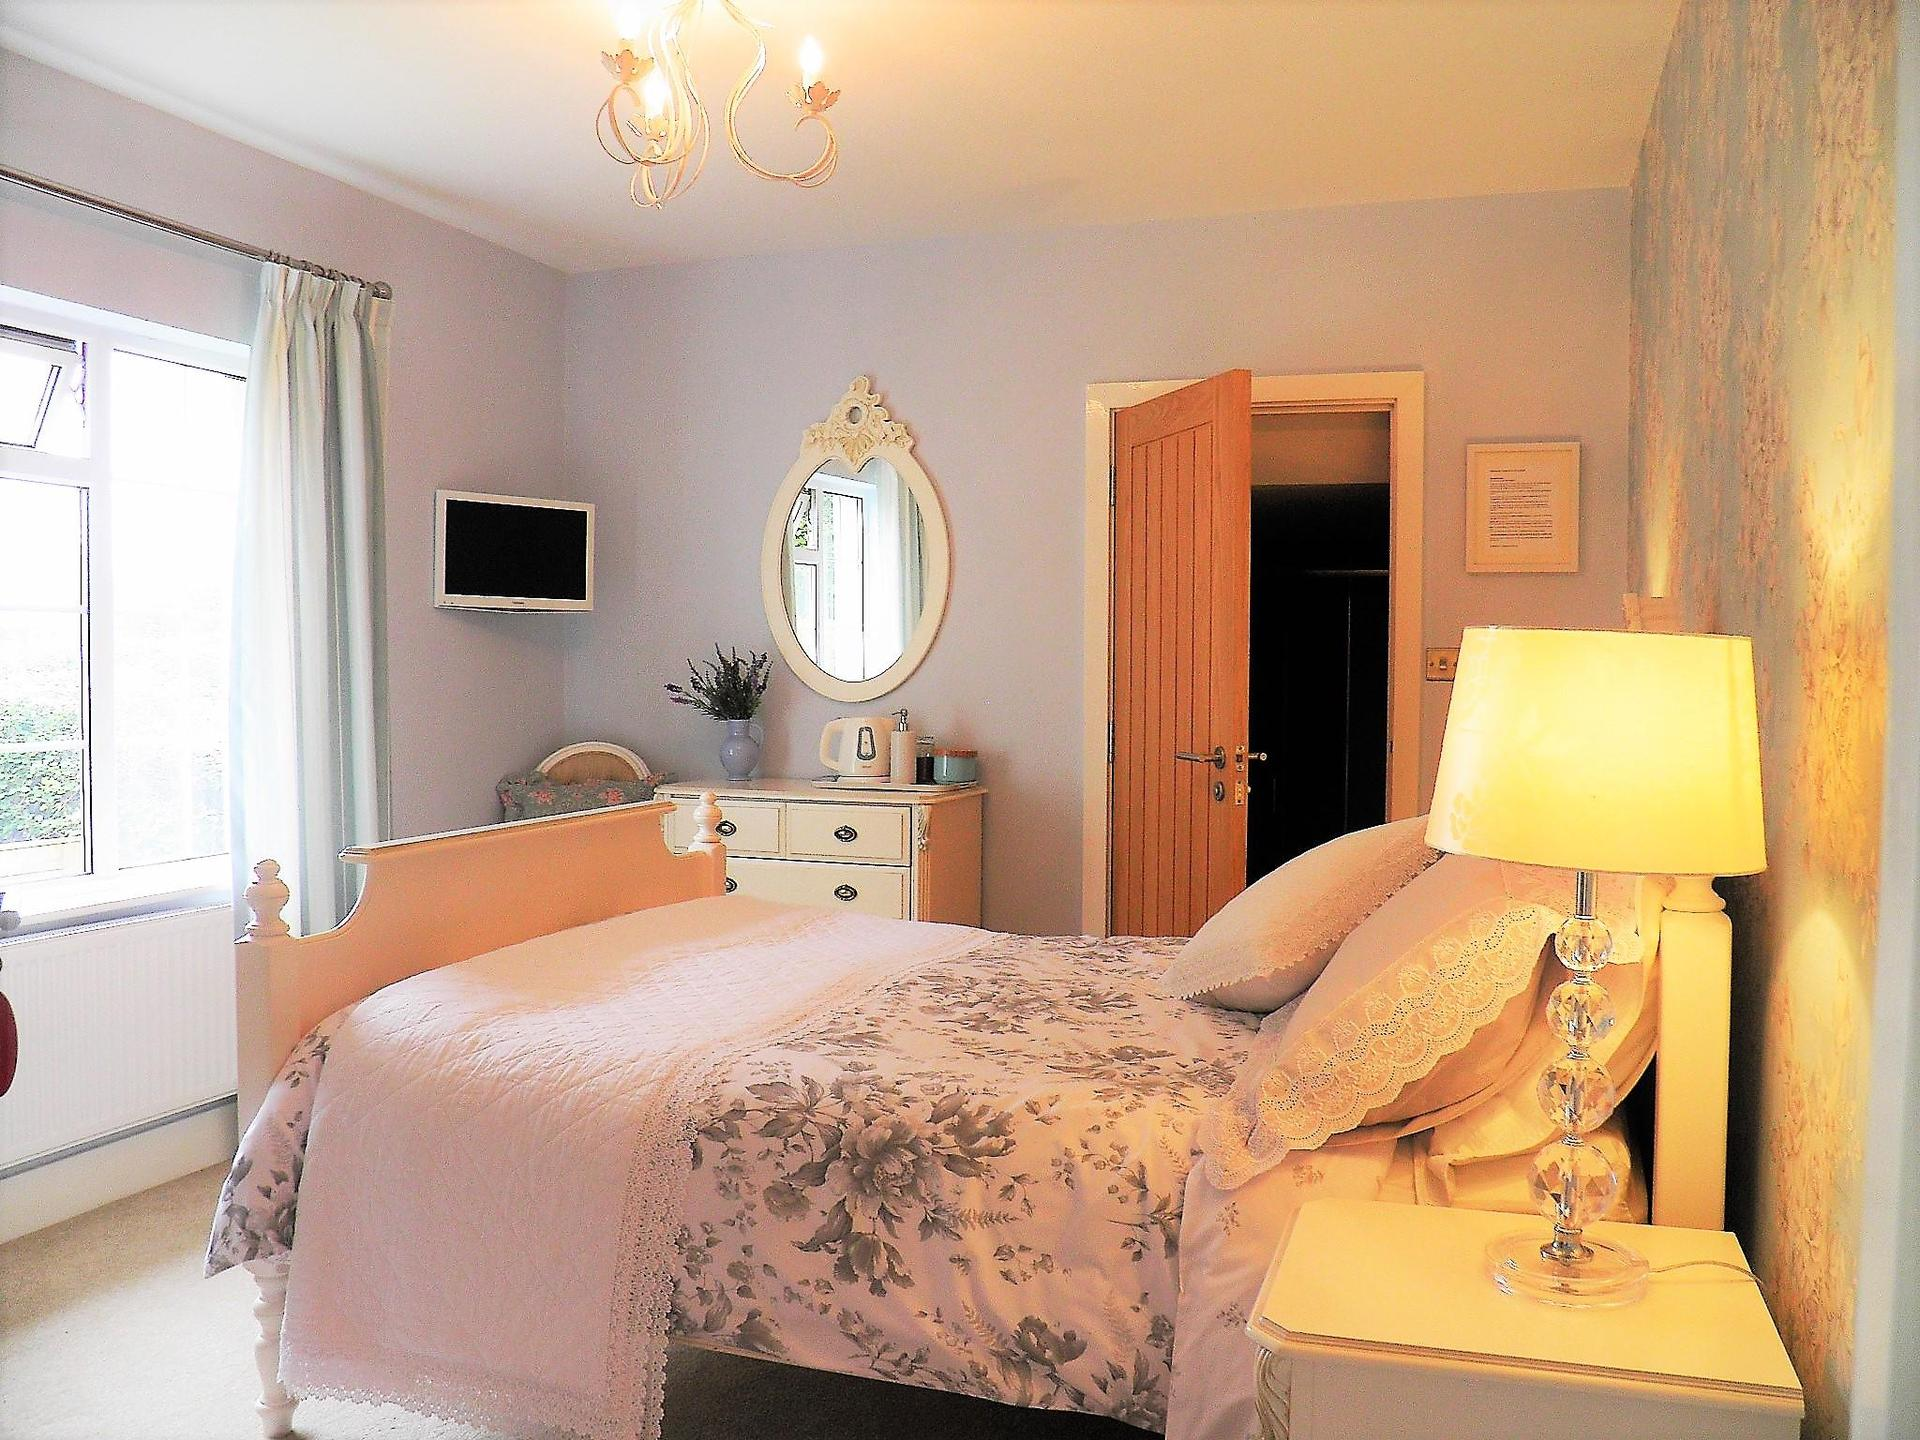 Cranleigh bed breakfast in exmouth devon ex8 2bz for Beds exmouth